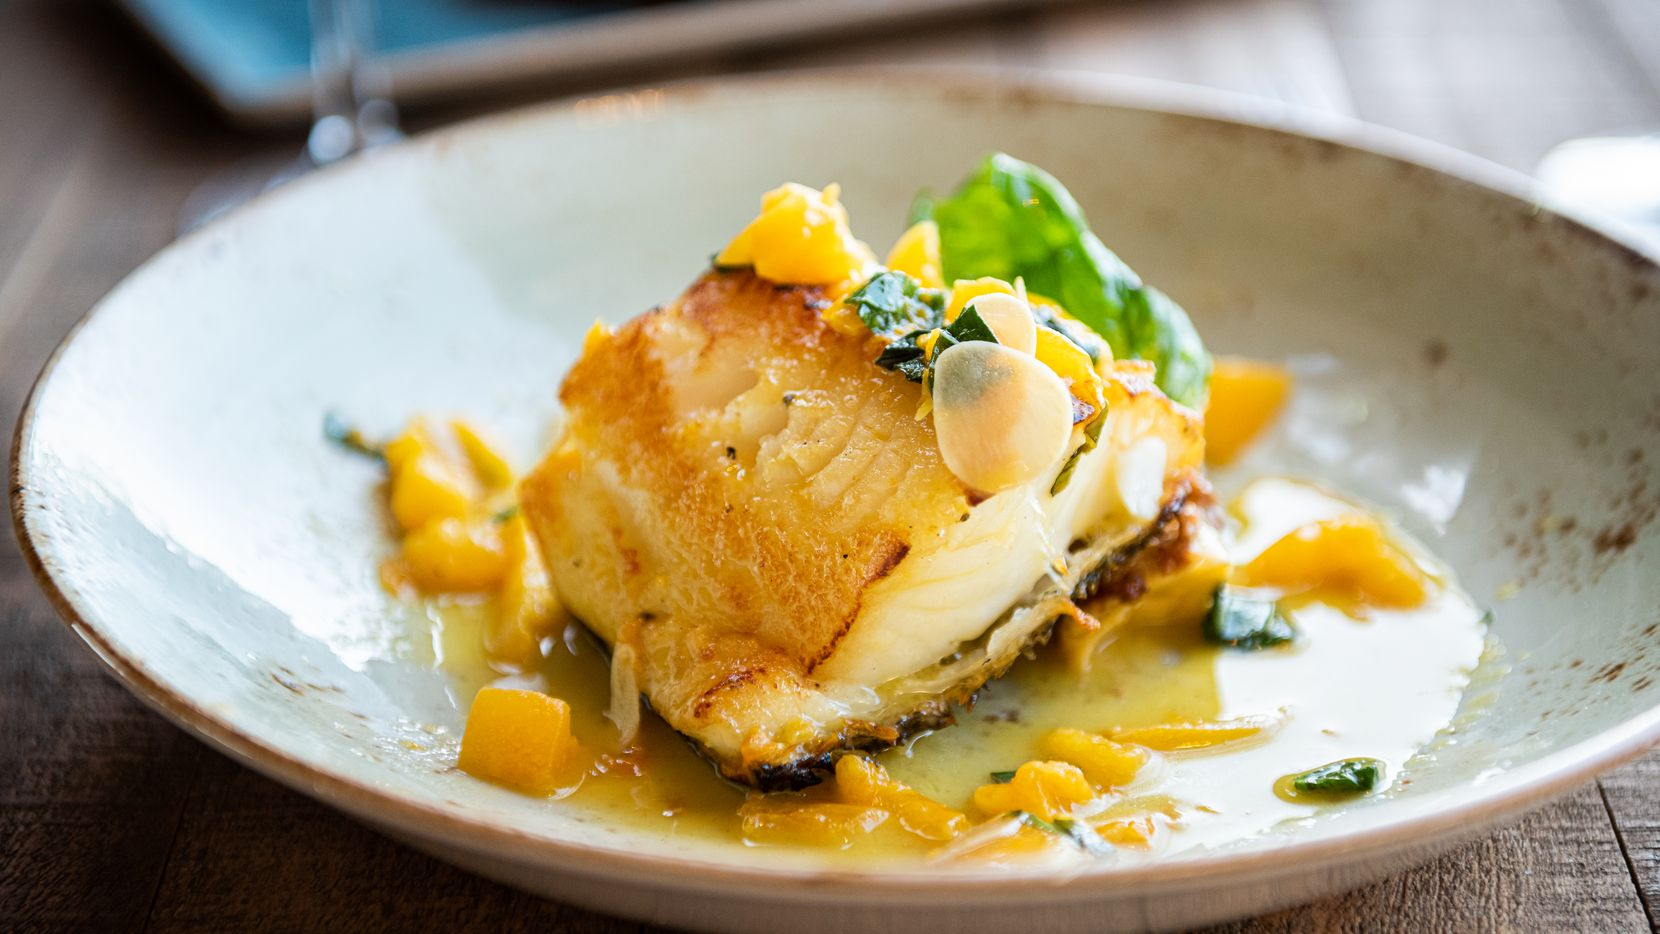 Pan seared sea bass with Italian black truffle potato-fennel gratin and yellow tomato basil sauce. The dish is part of Cru Food and Wine Bar's 2019 four-course New Year's Eve menu.